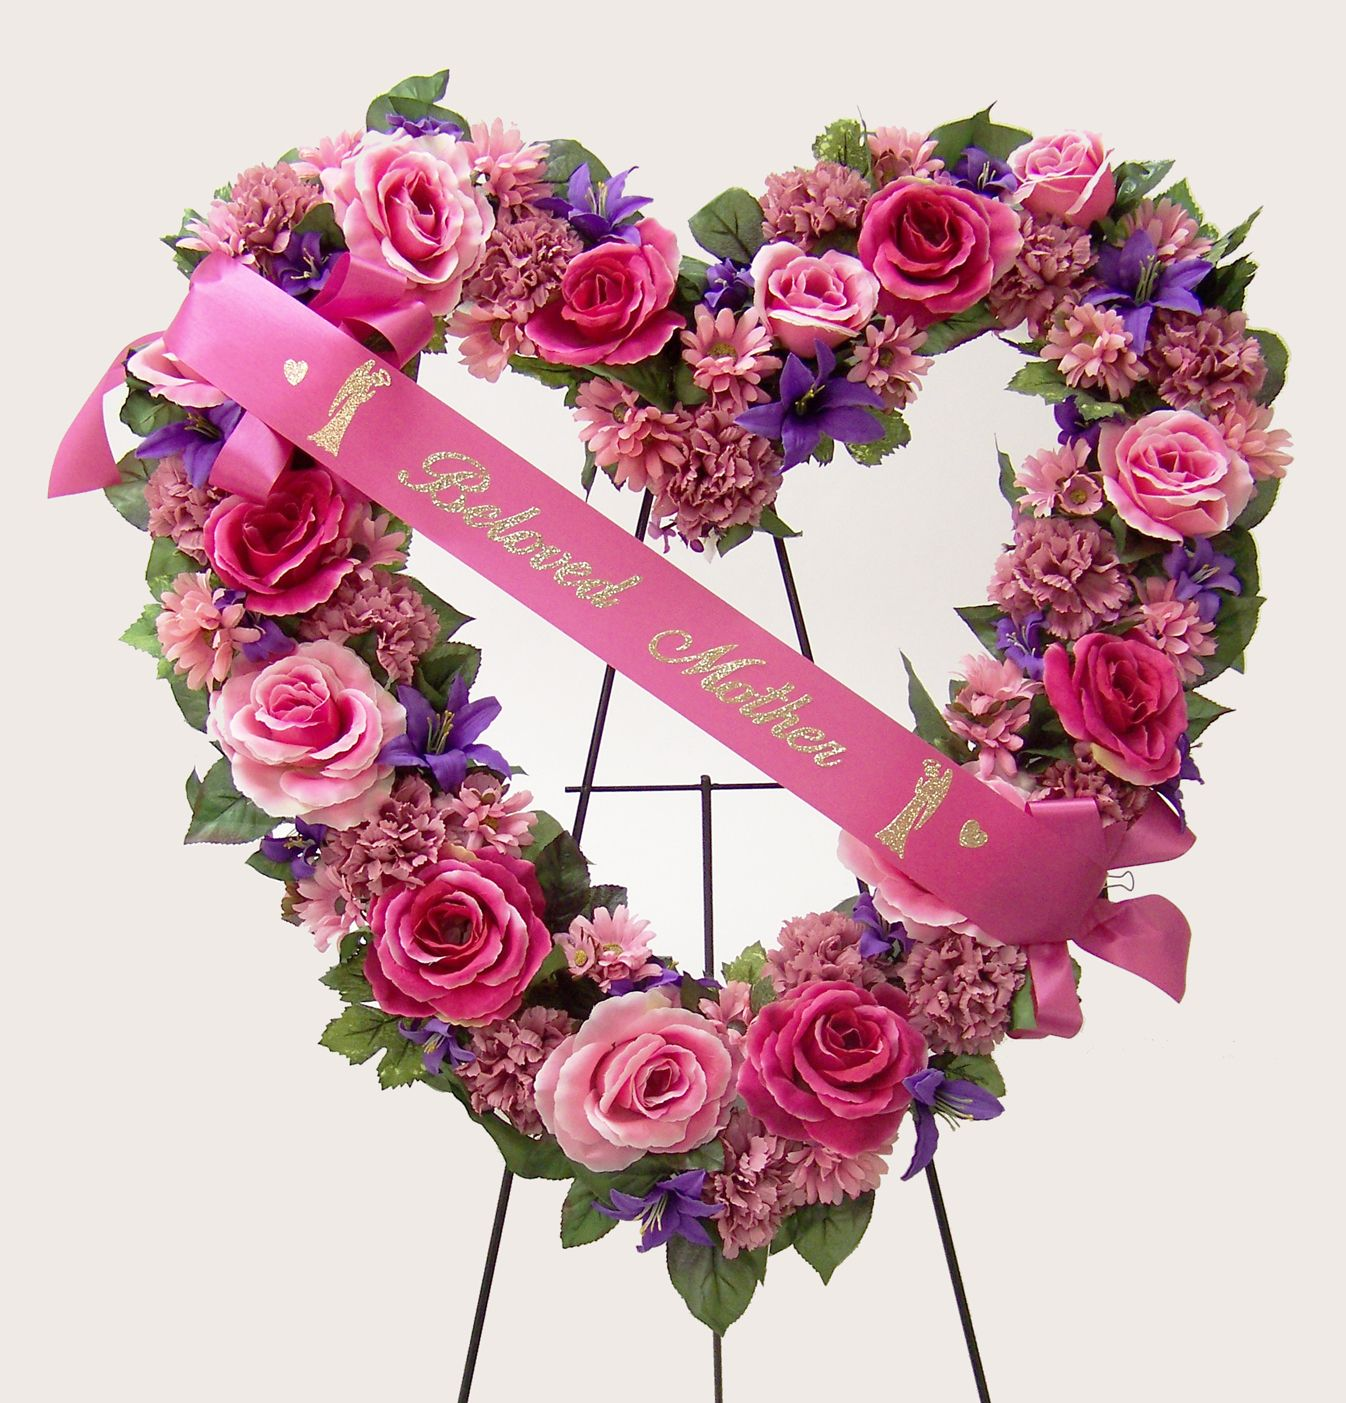 Sympathy ribbon google search flower cottage ideas pinterest sympathy ribbon google search izmirmasajfo Image collections